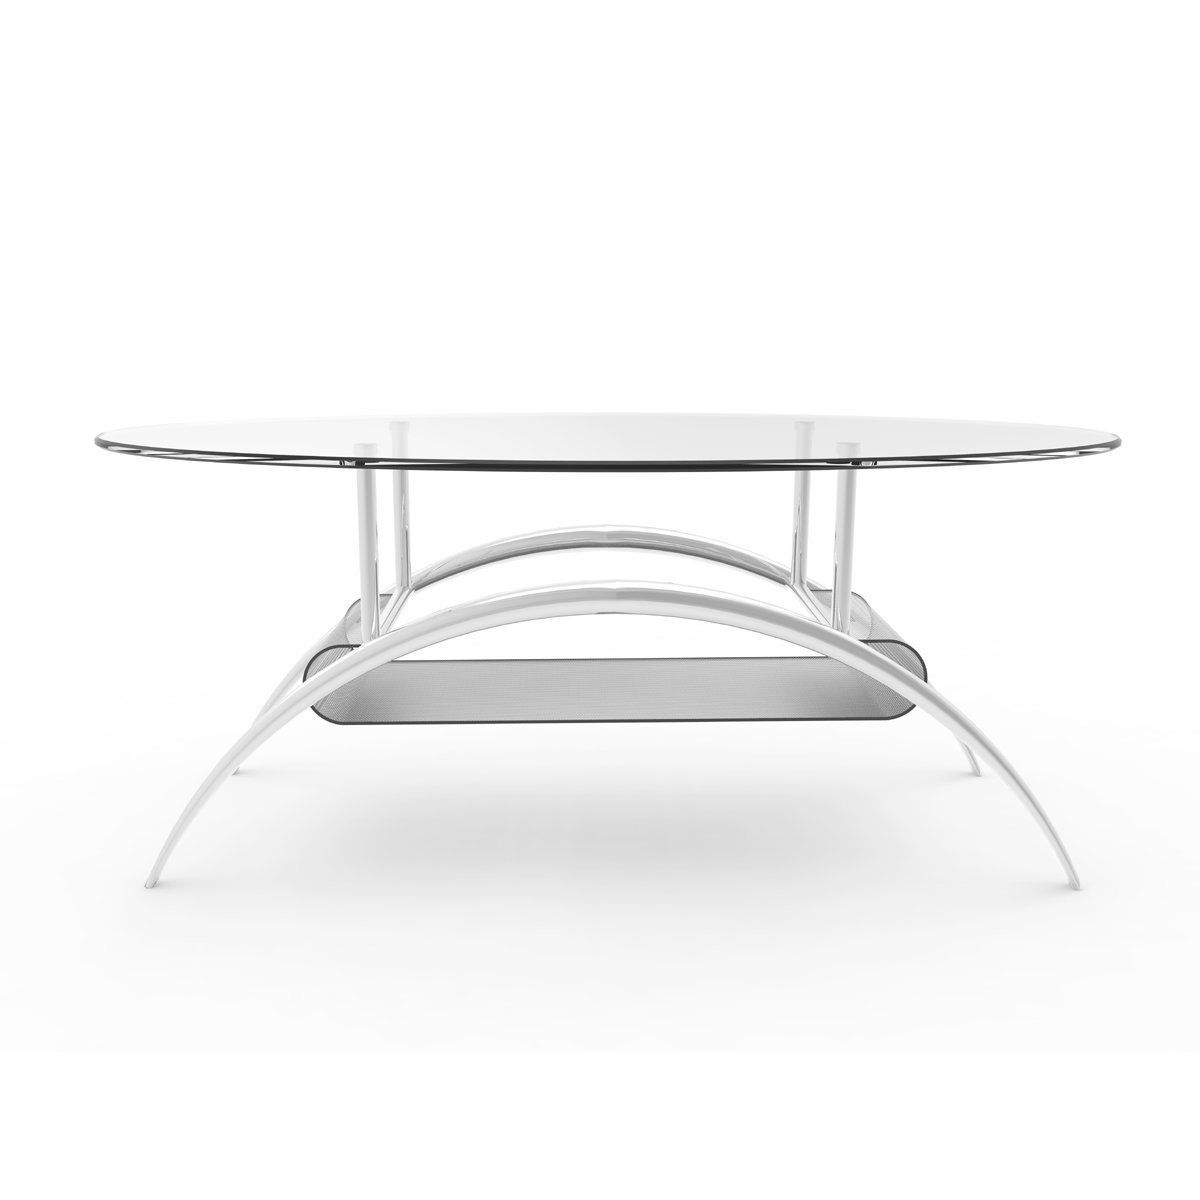 Ryan Rove Cleveland 38 Inch Glass Coffee Table With Black Mesh Magazine Holder Con Modern Coffee Tables Ashley Furniture Living Room Oval Glass Coffee Table [ 1200 x 1200 Pixel ]